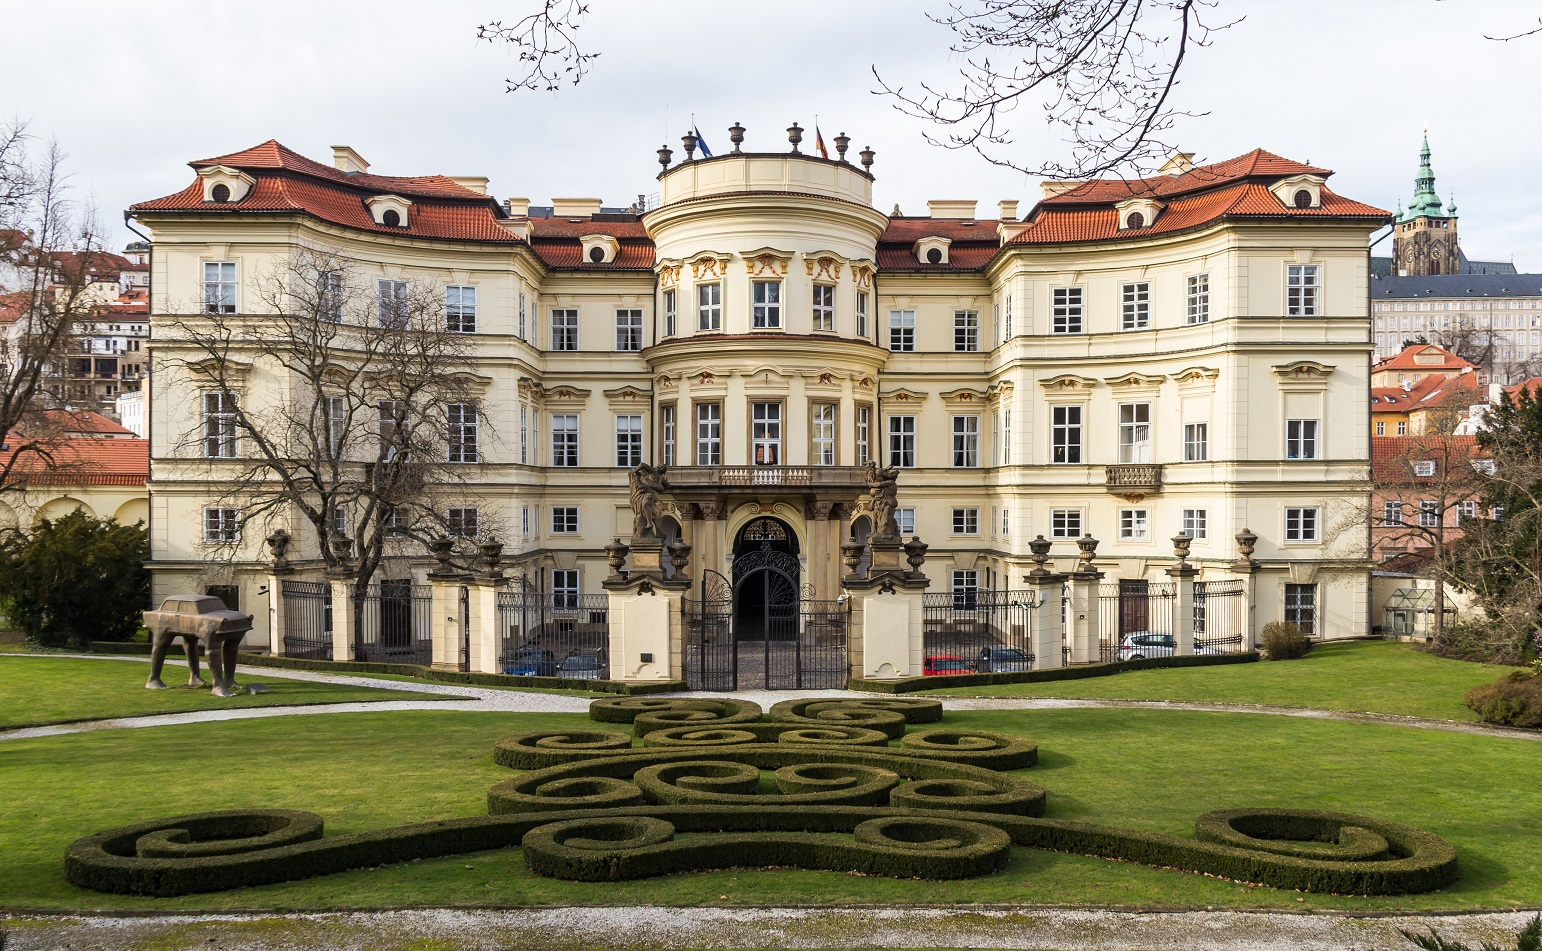 Deutsche Botschaft Prag - Foto: Raimond Spekking / CC BY-SA 4.0 (via Wikimedia Commons), German Embassy, Prague, back side with garden-6587, CC BY-SA 4.0